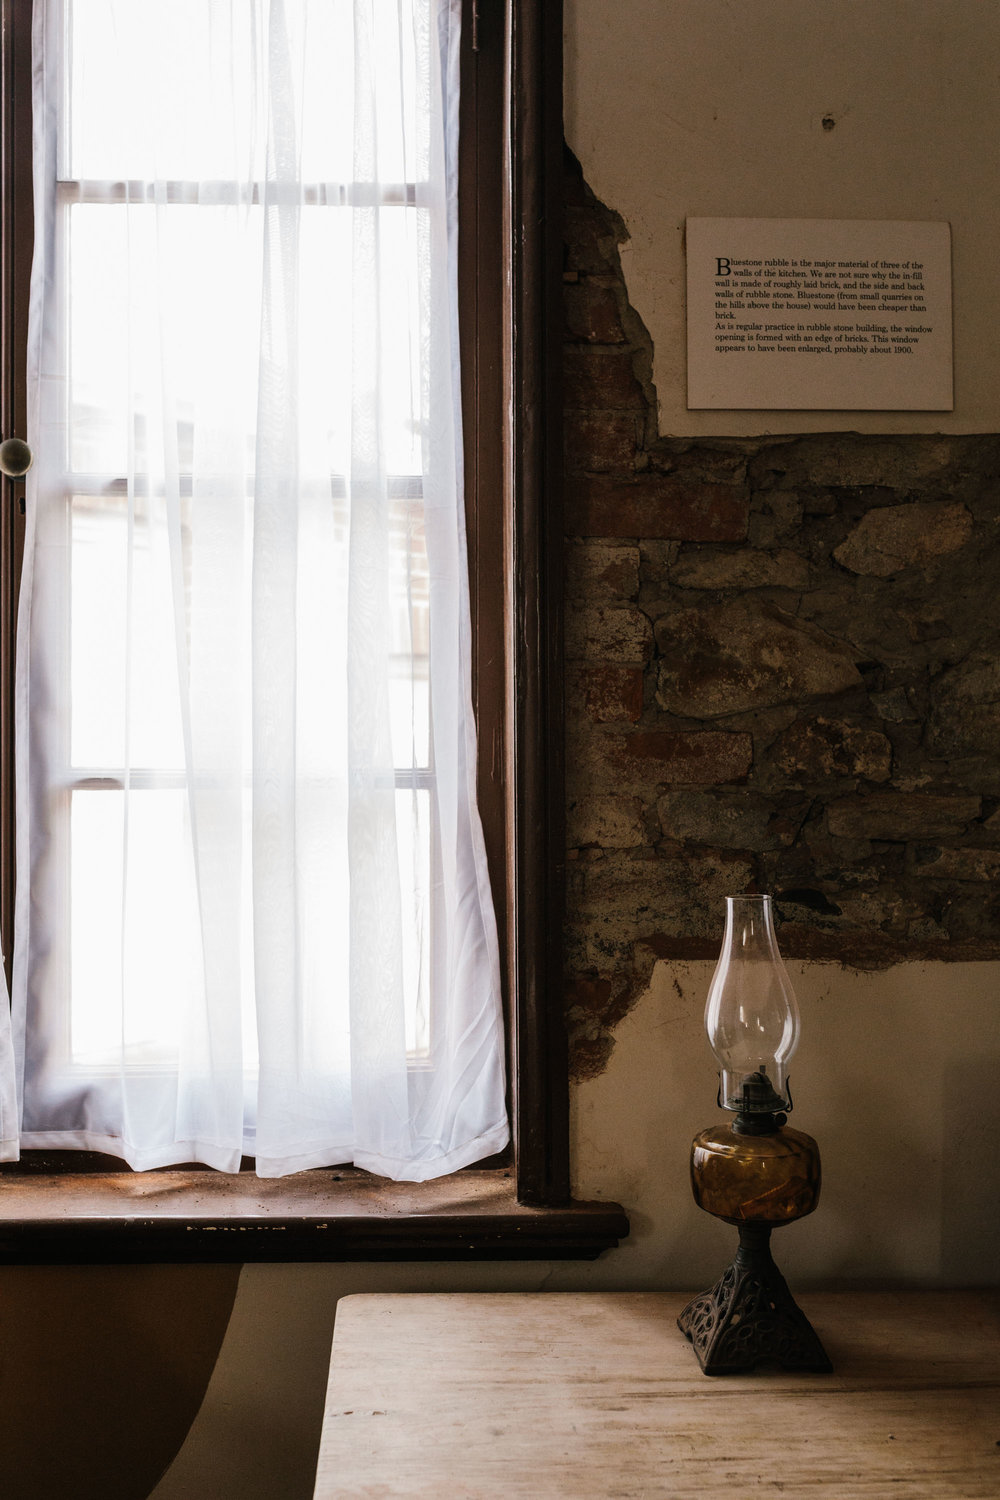 Marnie Hawson for Beaumont House, Adelaide and The National Trust